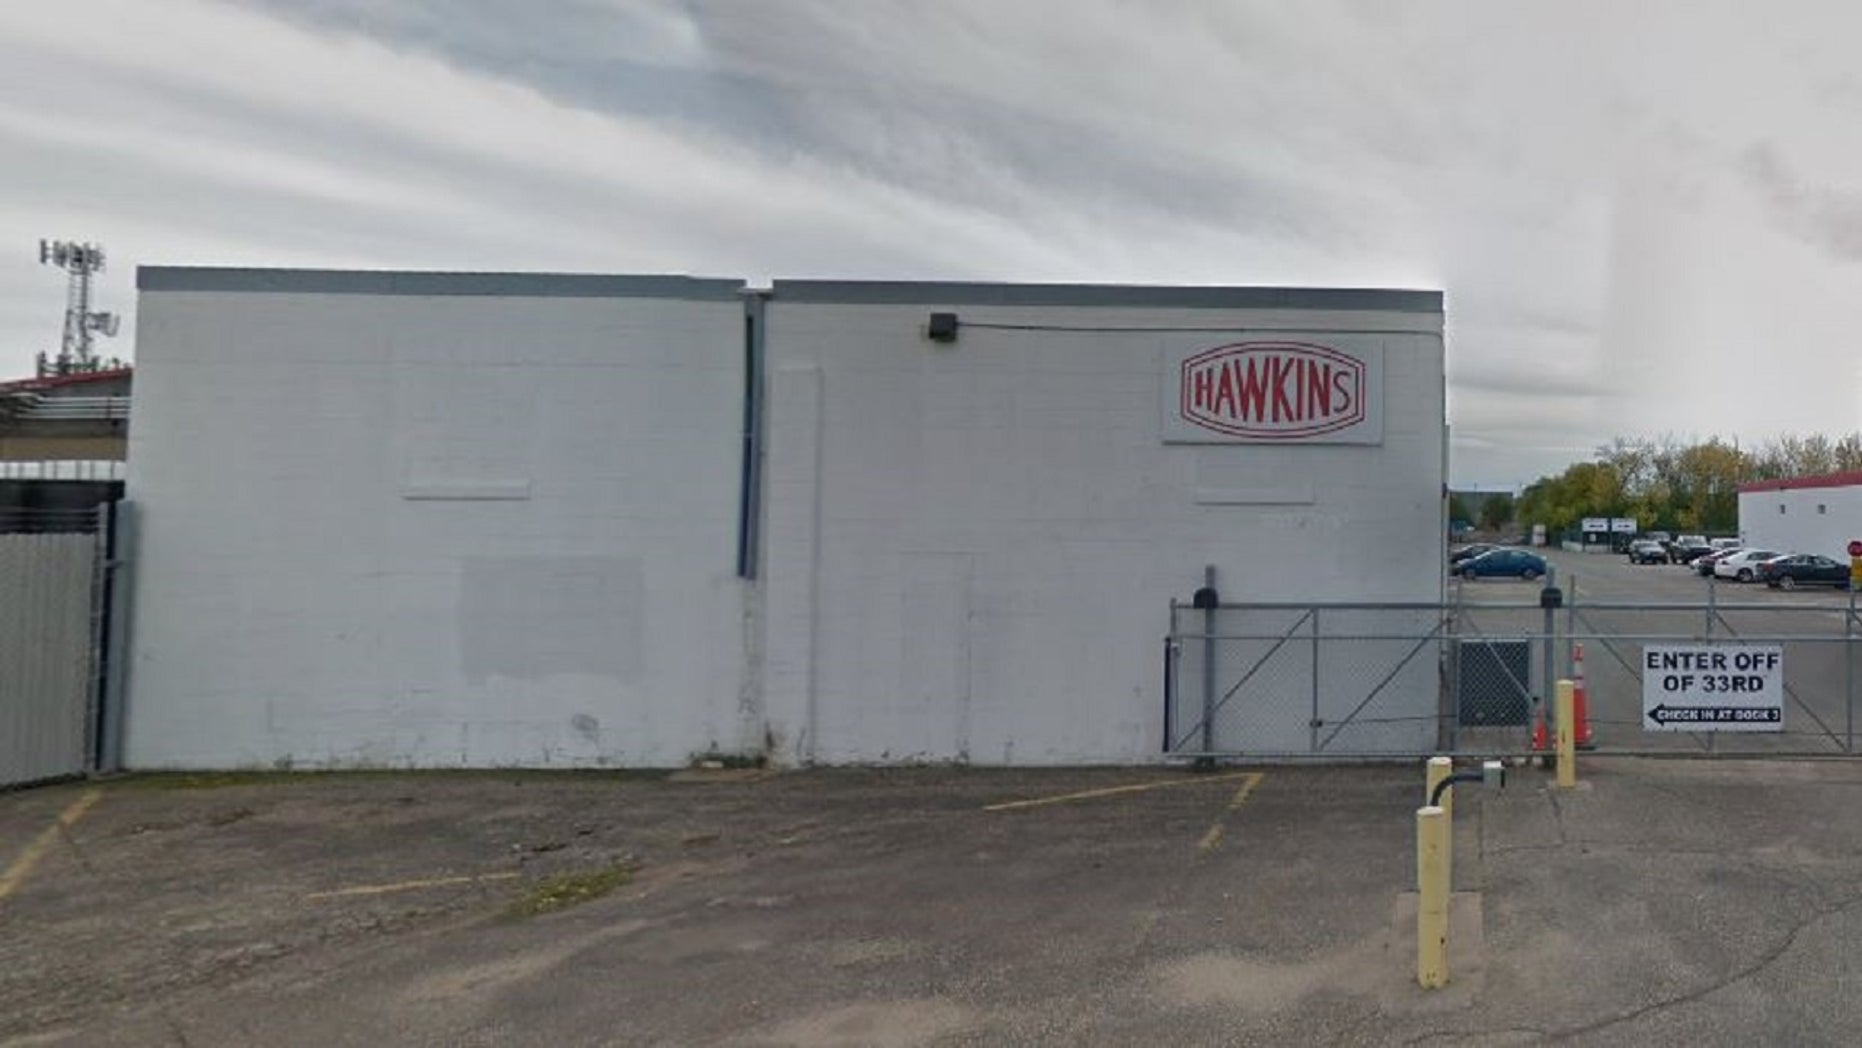 A total of 5,700 gallons of nitric acid at Hawkins Chemical were spilled on Friday morning, reports said.